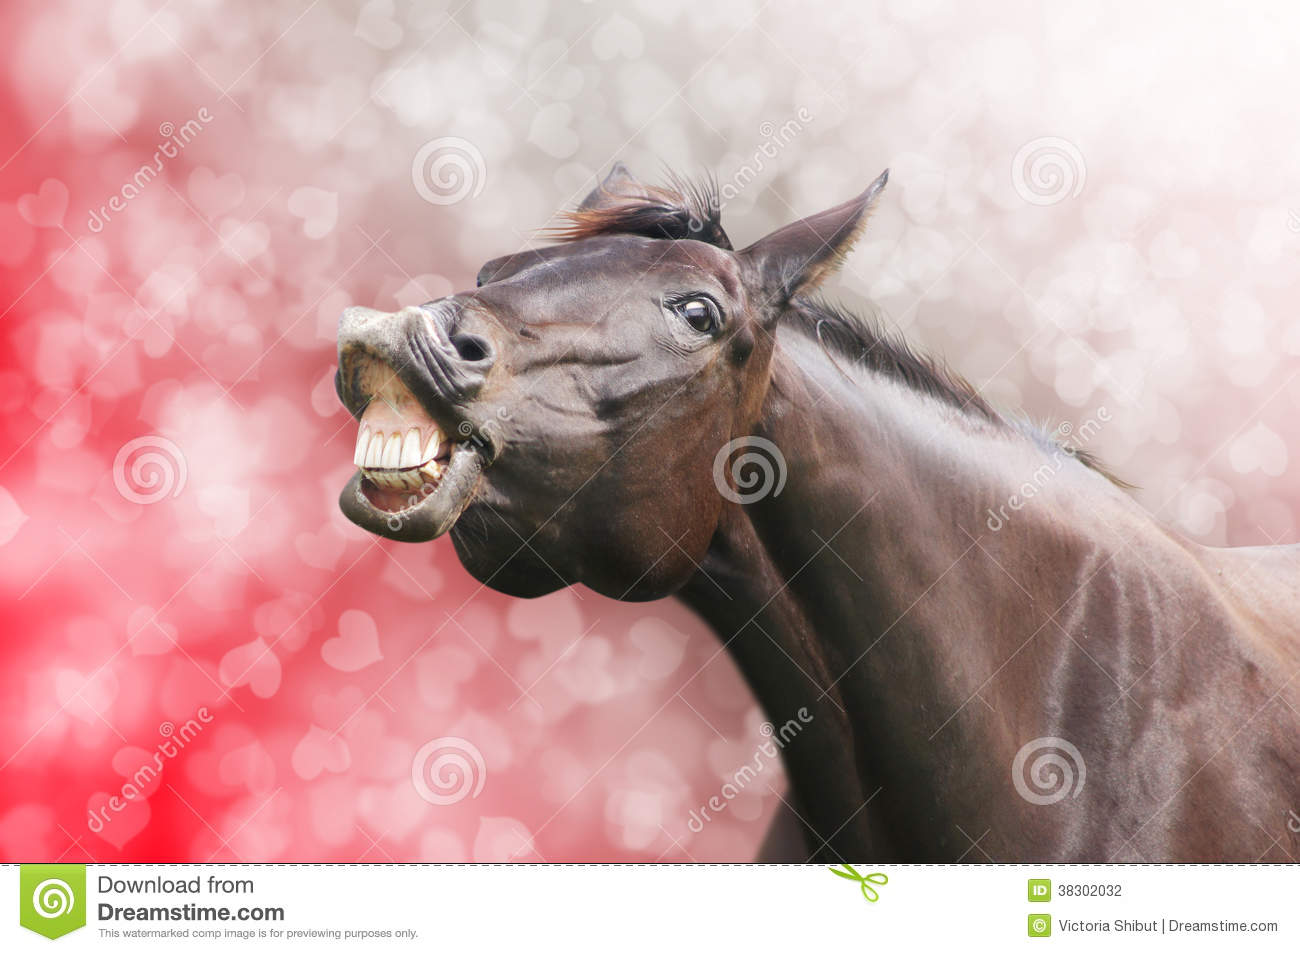 Horse laugh on heart holiday background